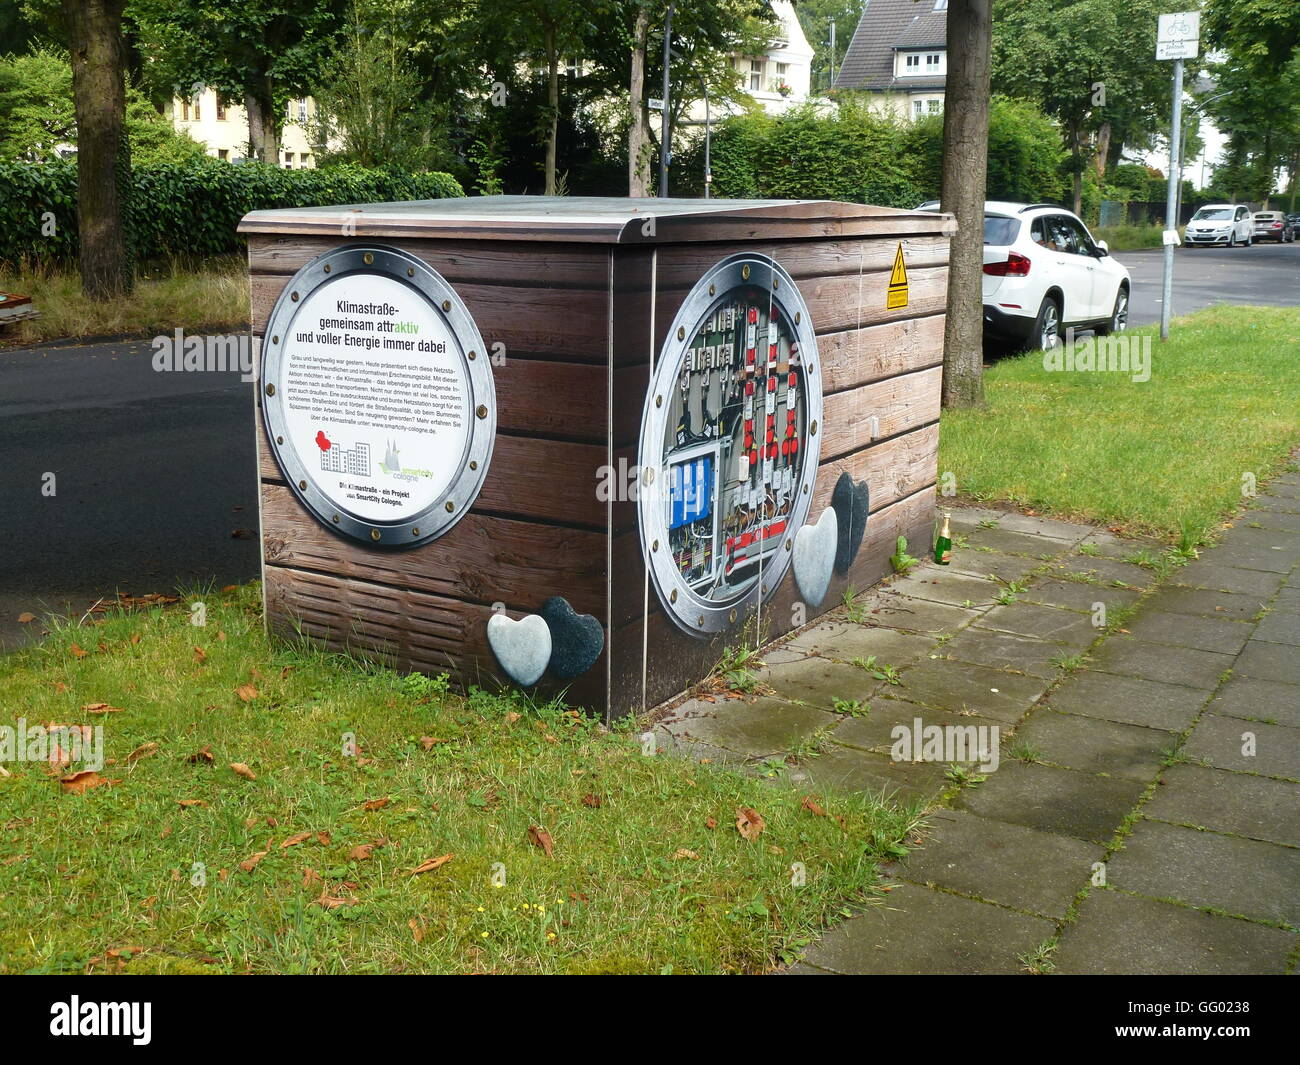 An electrical substation in Cologne, Germany, 31 July 2016. RheinEnergie is sprucing up the substations with artistic Stock Photo